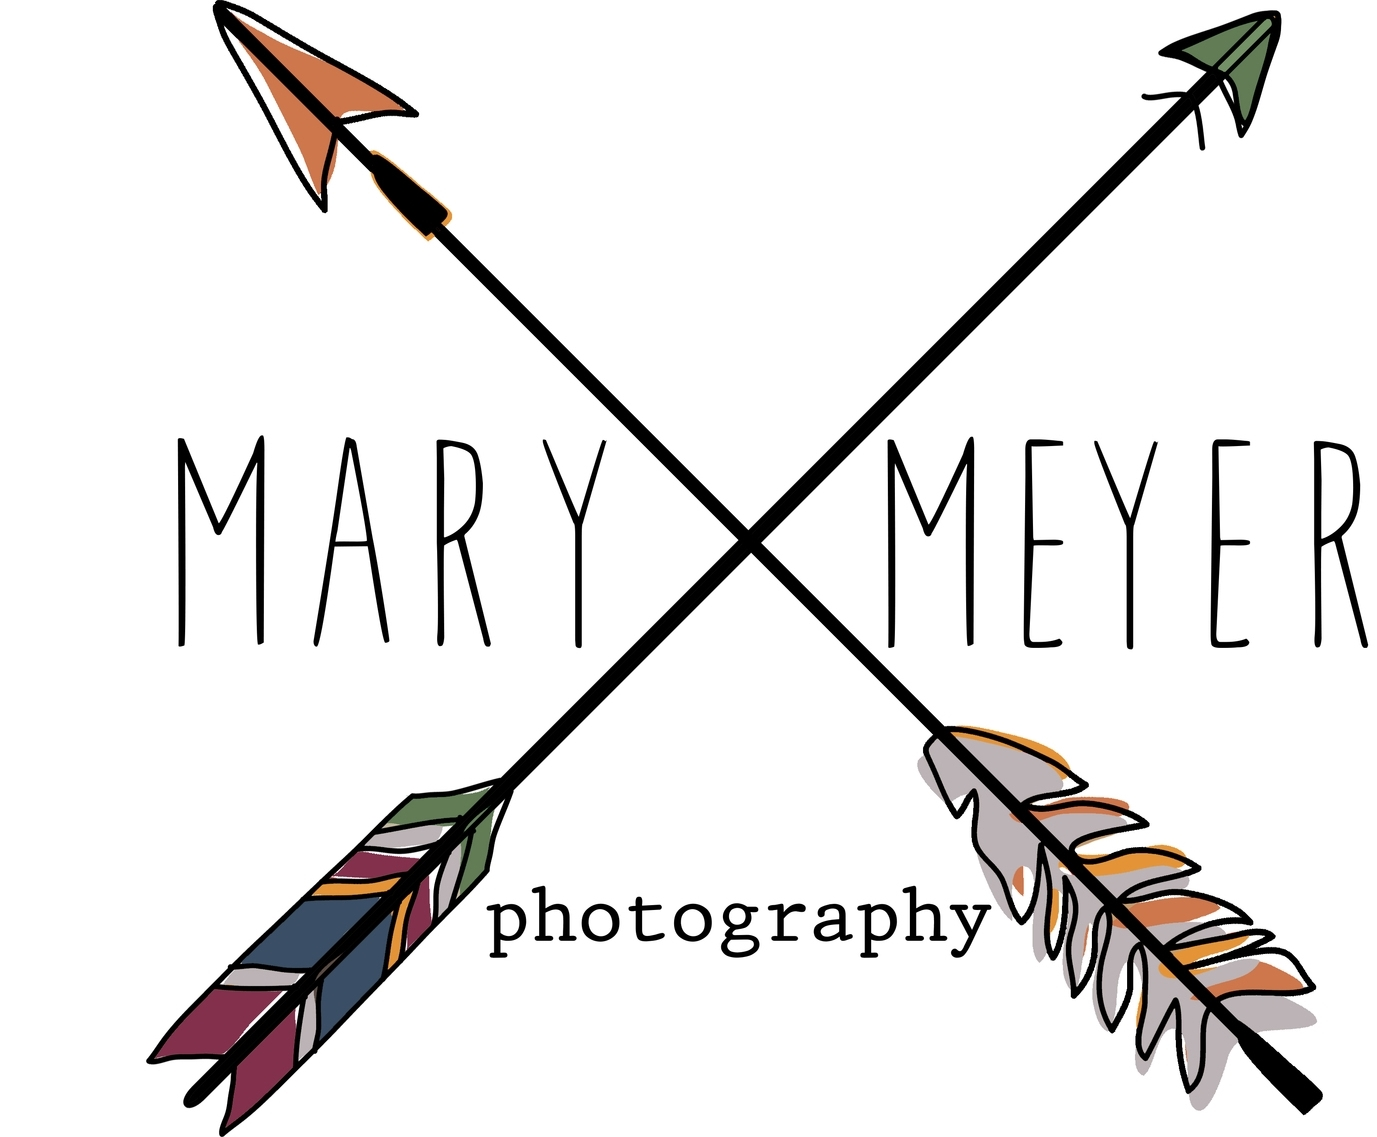 Mary Meyer Photography